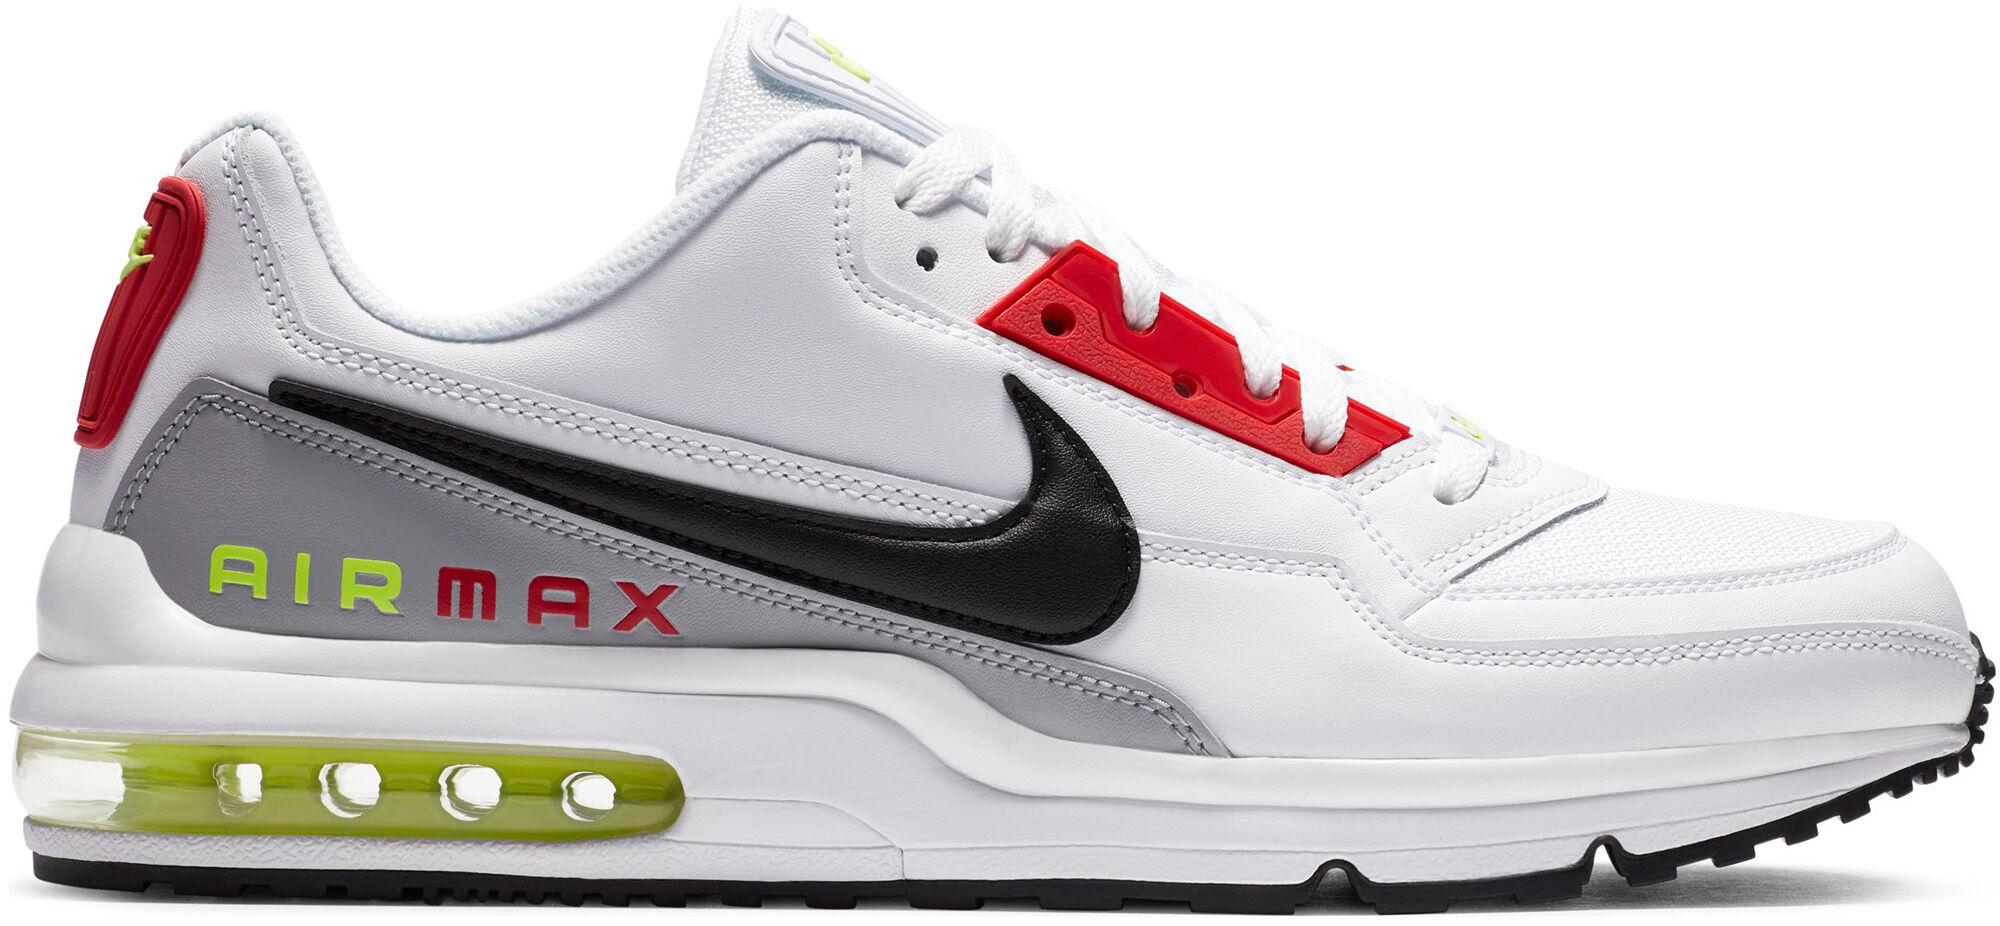 Nike Air max ltd 3 CZ7554-100